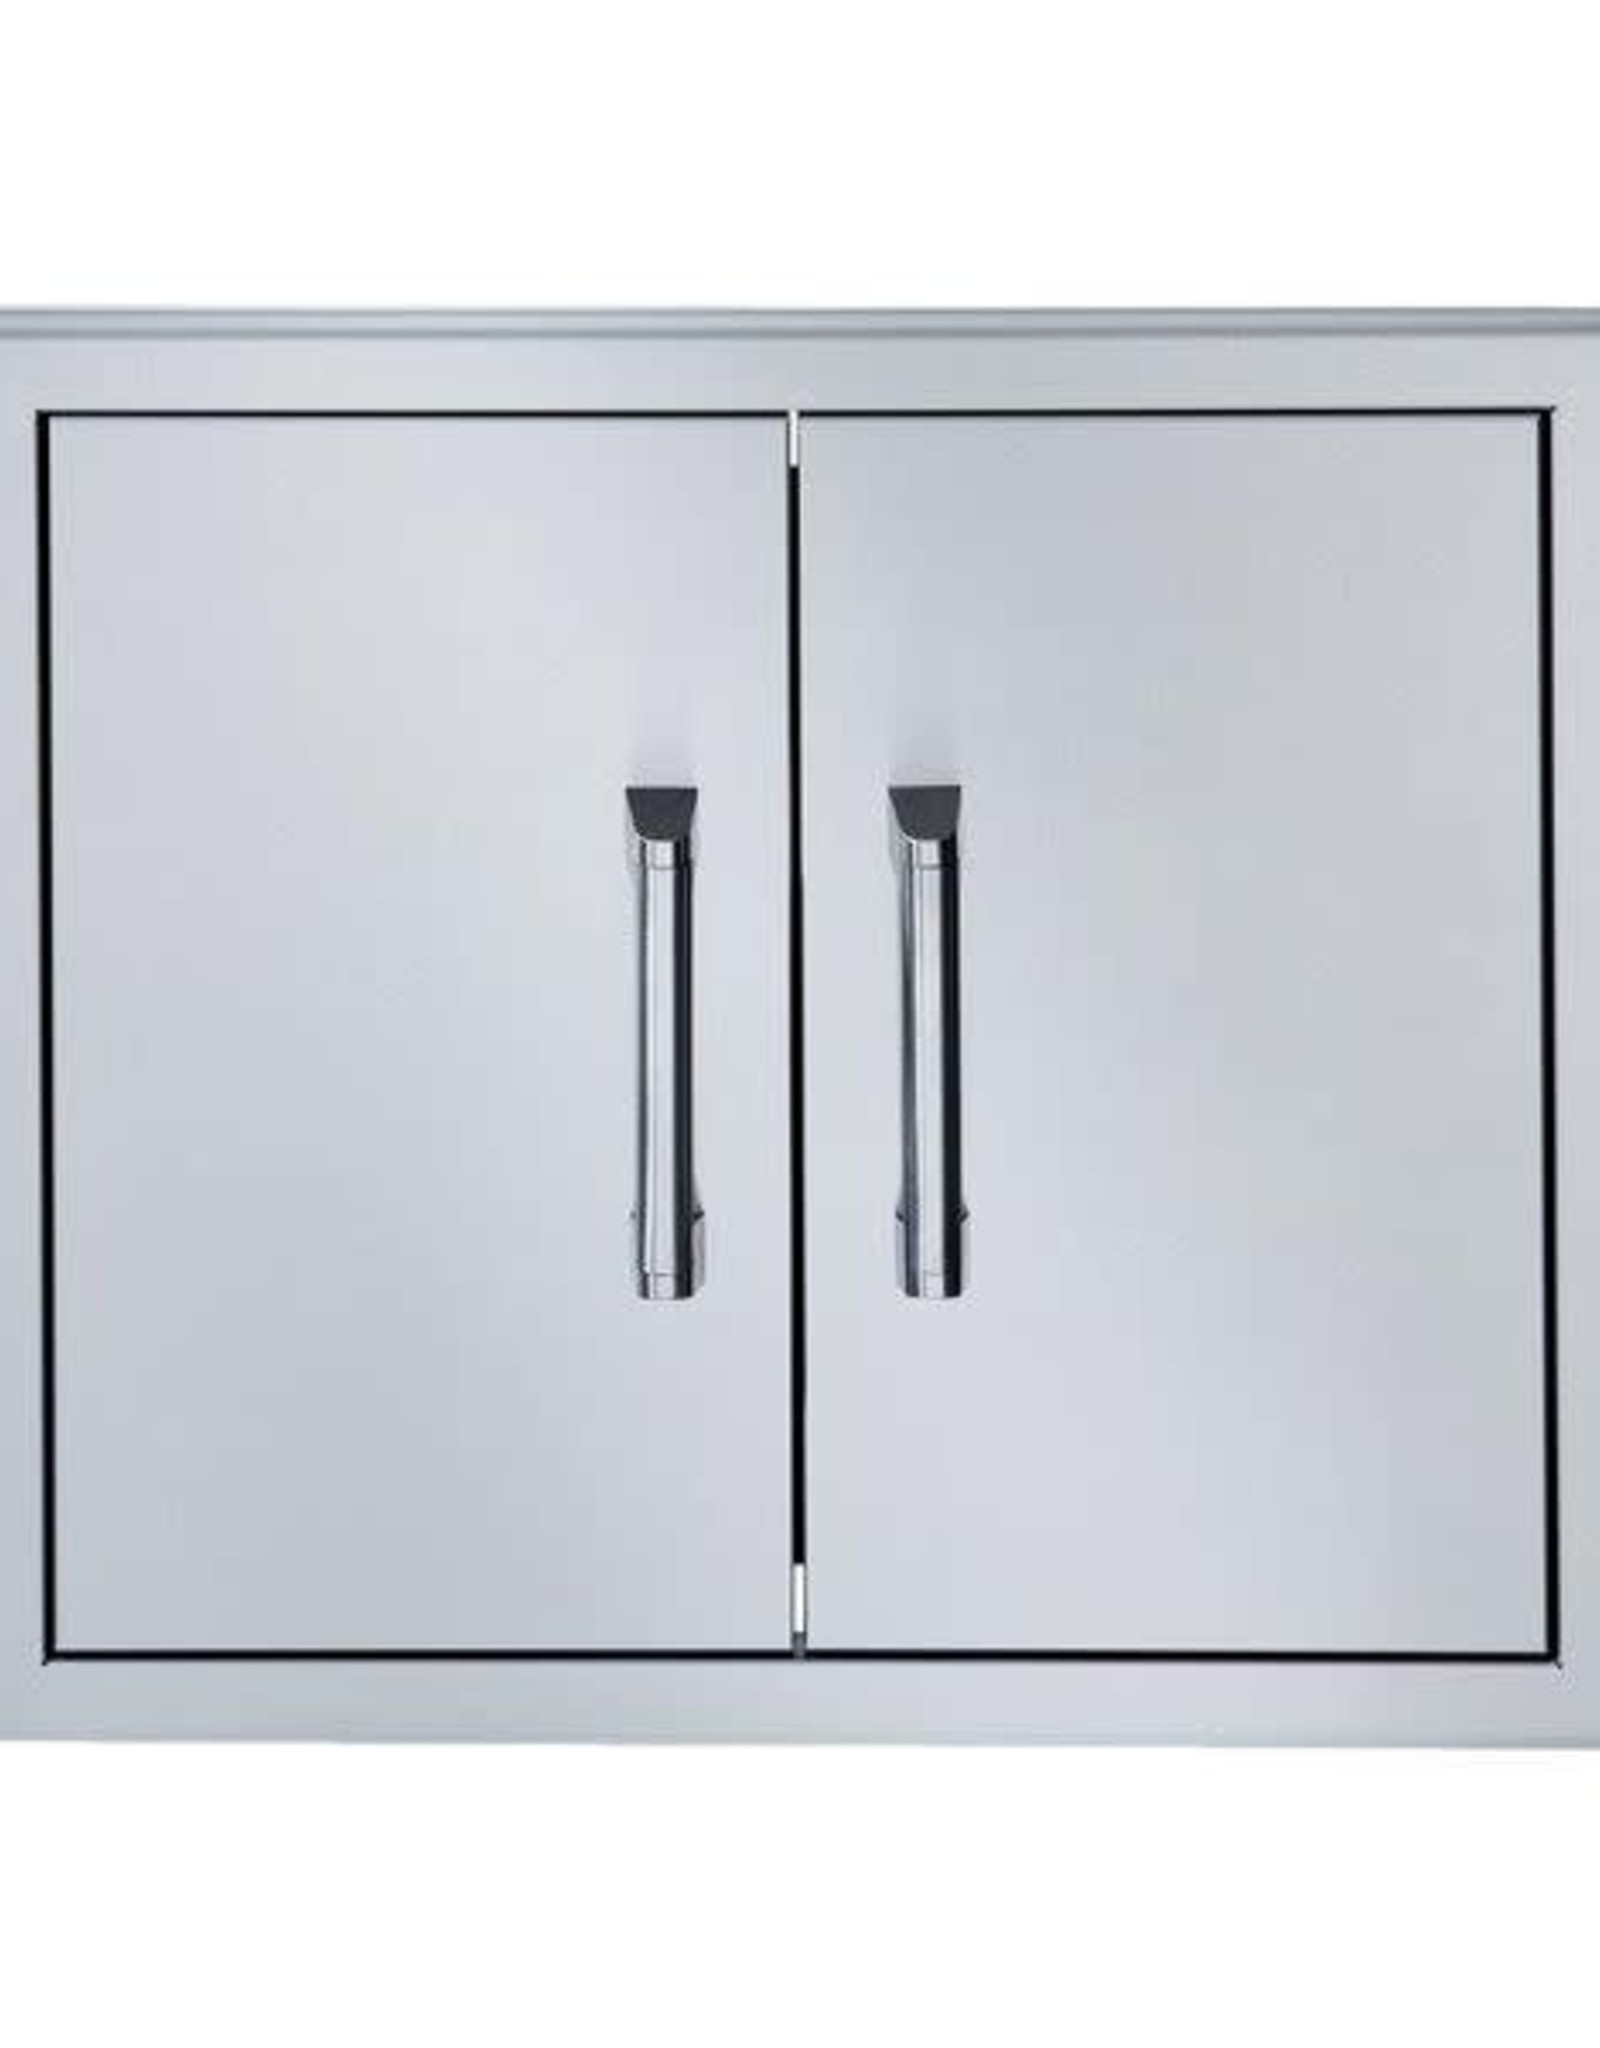 Broilmaster Broilmaster 26-Inch Double Door for BSG262N Gas Grill - BSAD2622D